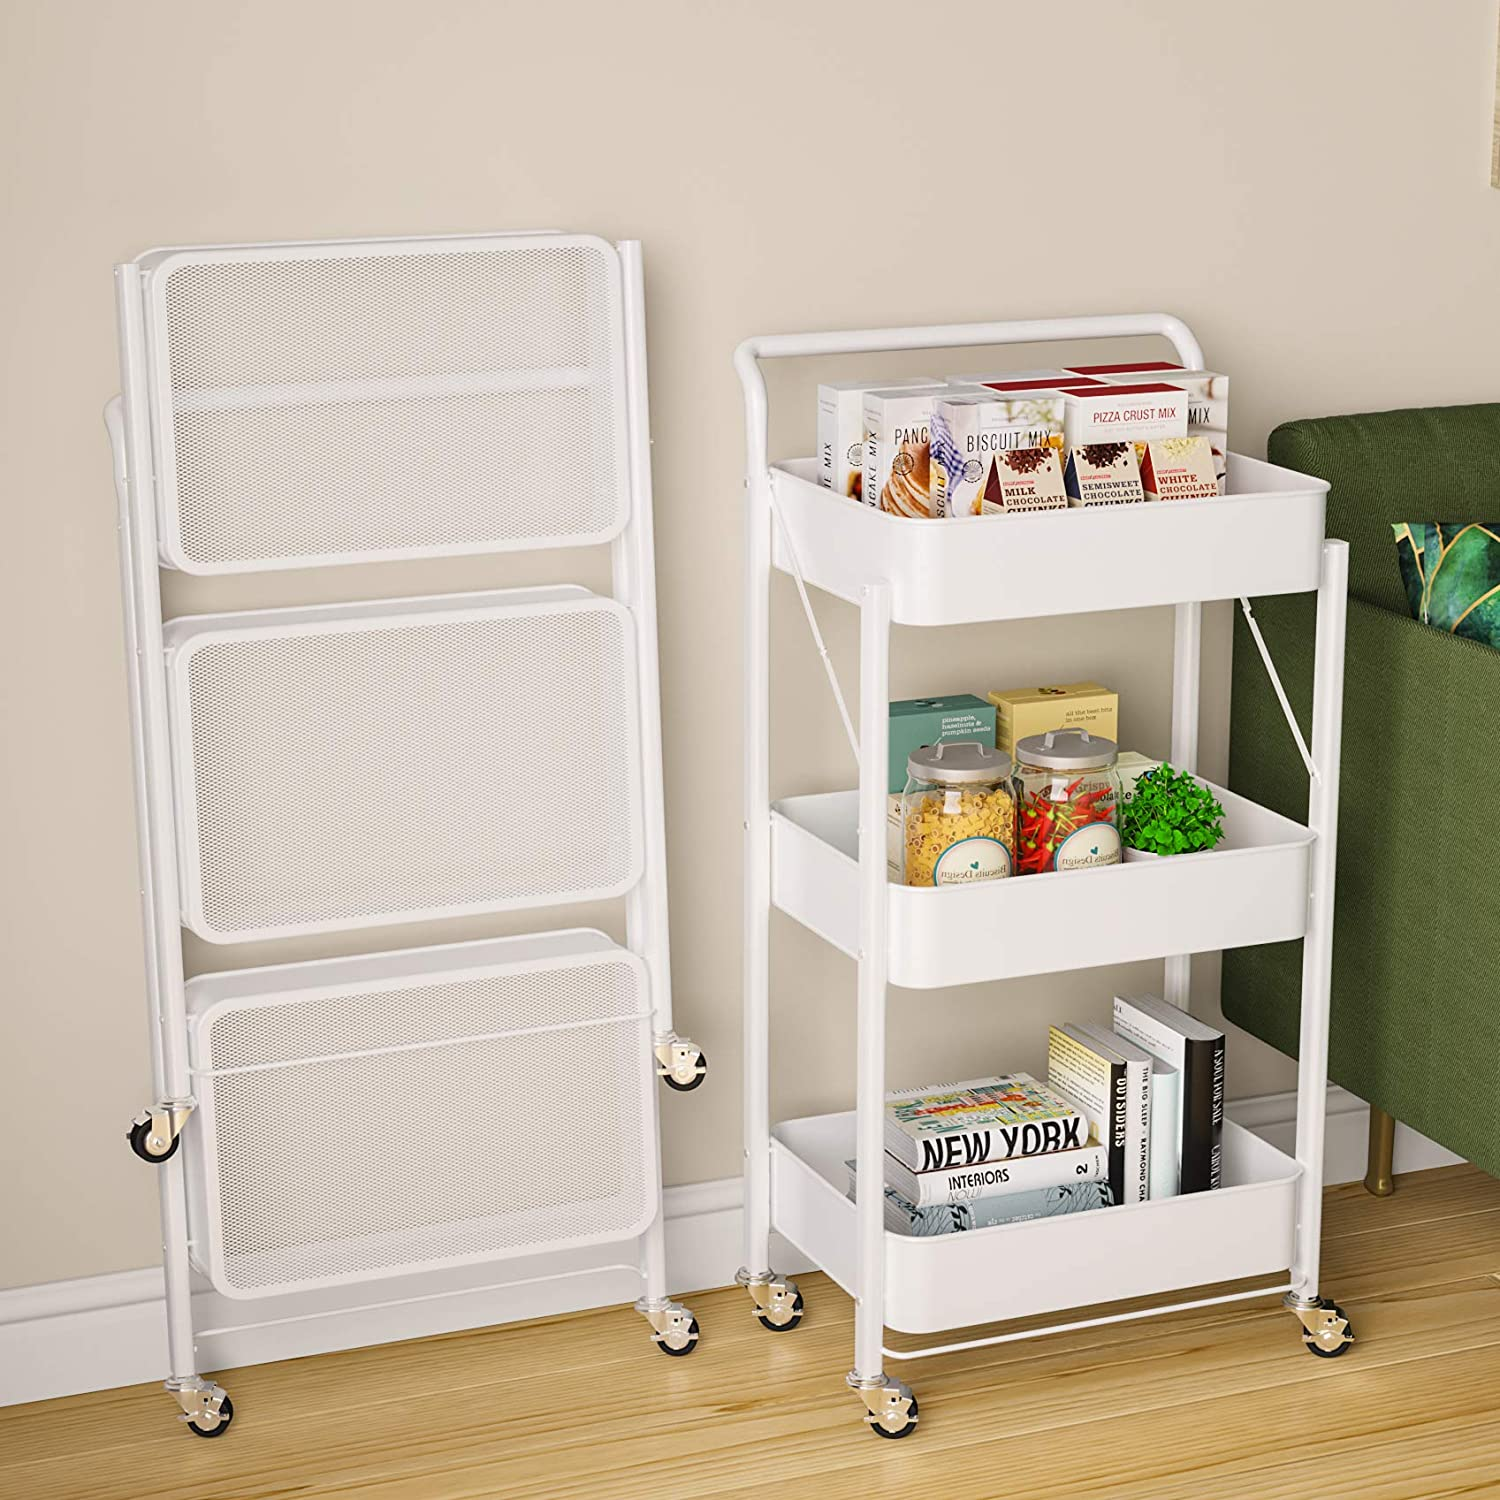 3 Arlington Mall Tier 67% OFF of fixed price Rolling Foldable Utility Cart Whee Roller and with Handle